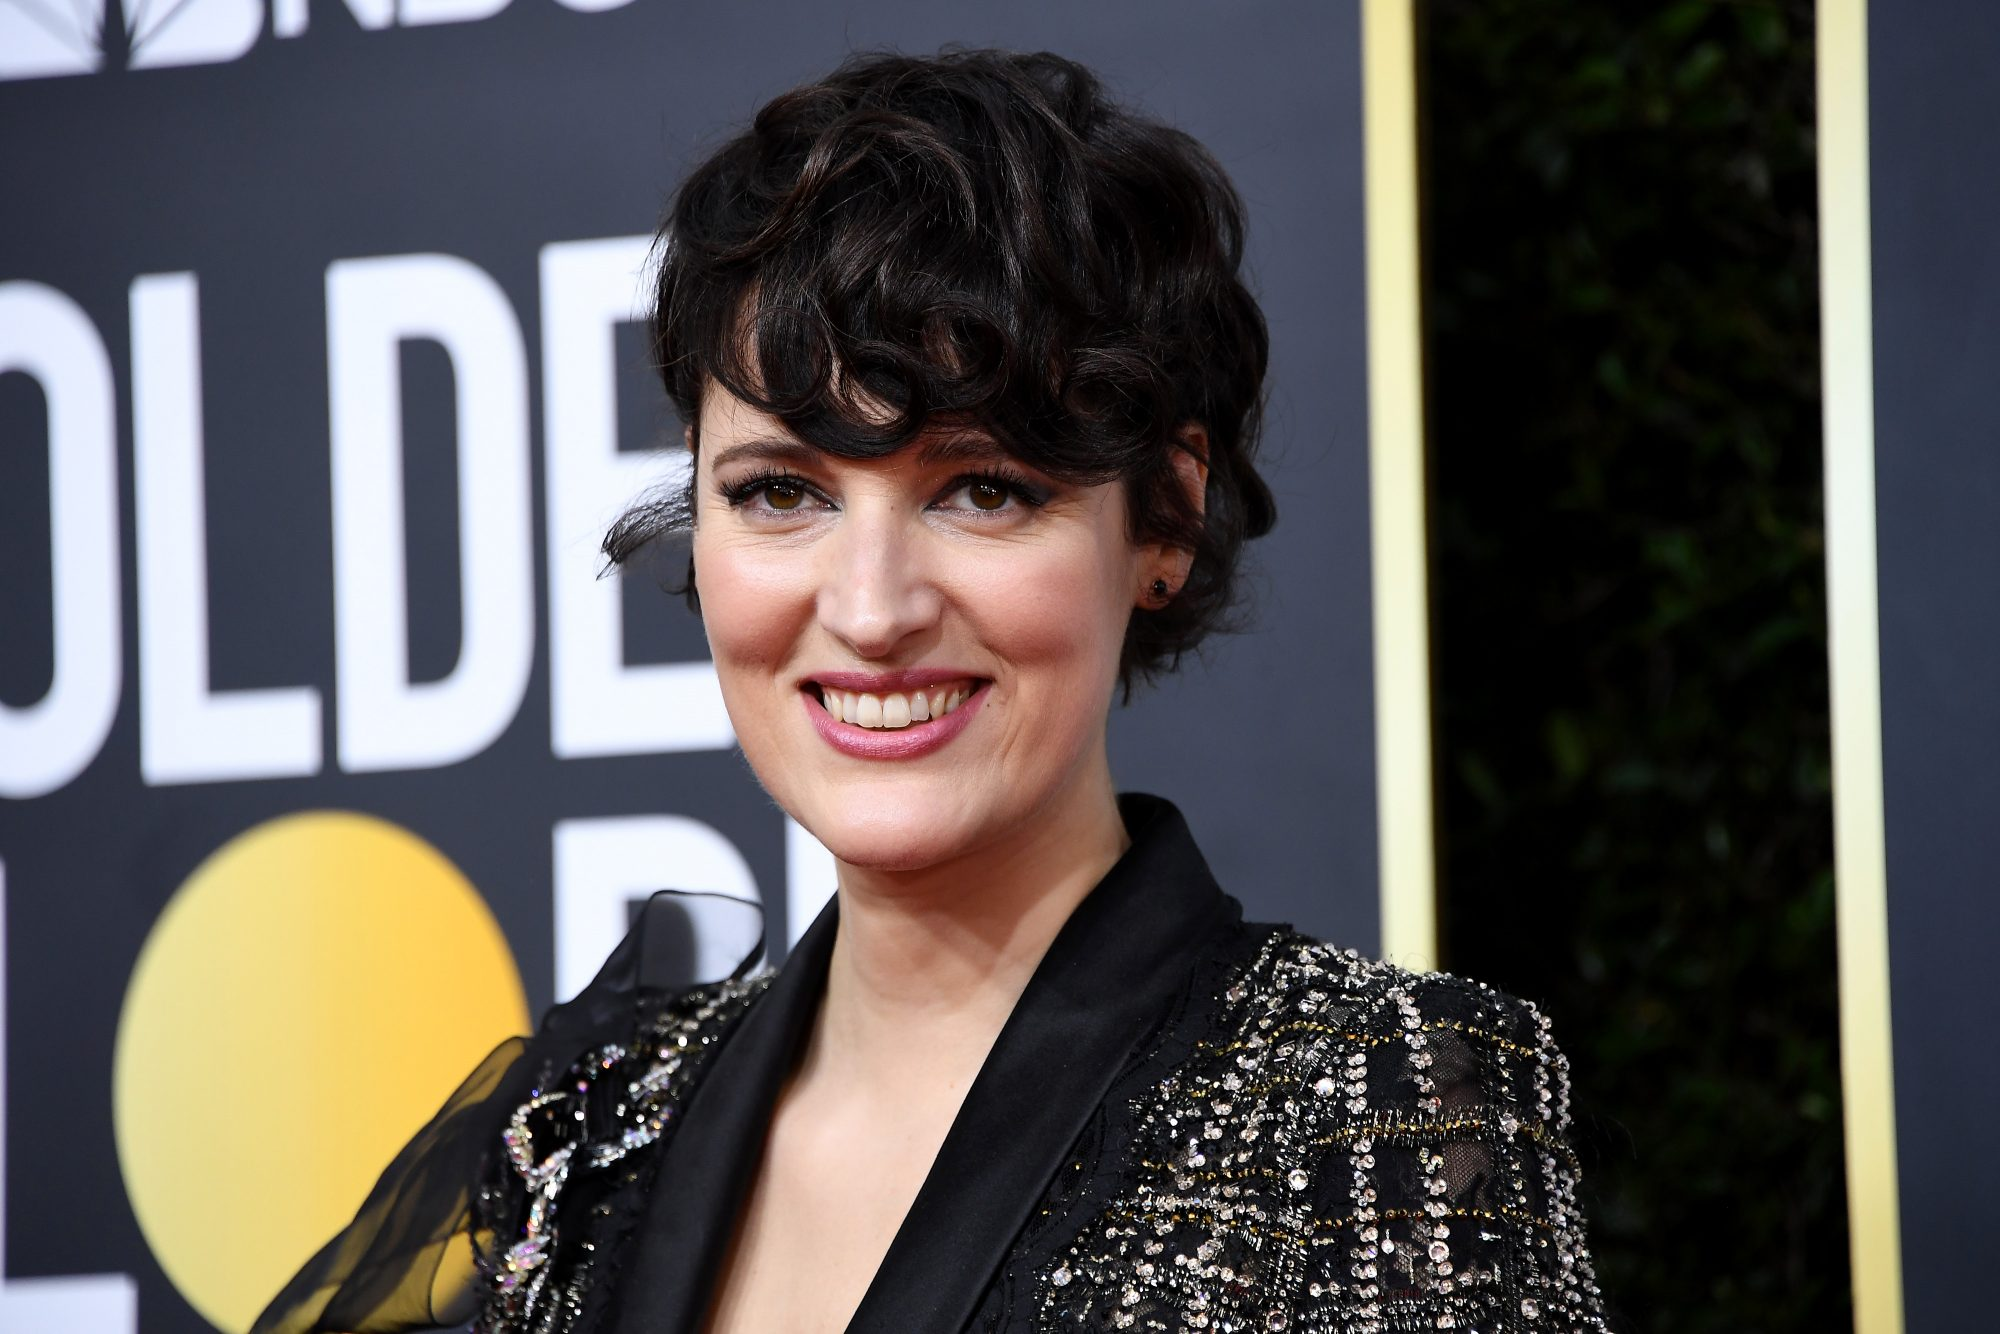 TV Series 'Fleabag' Is Getting Its Own Gin